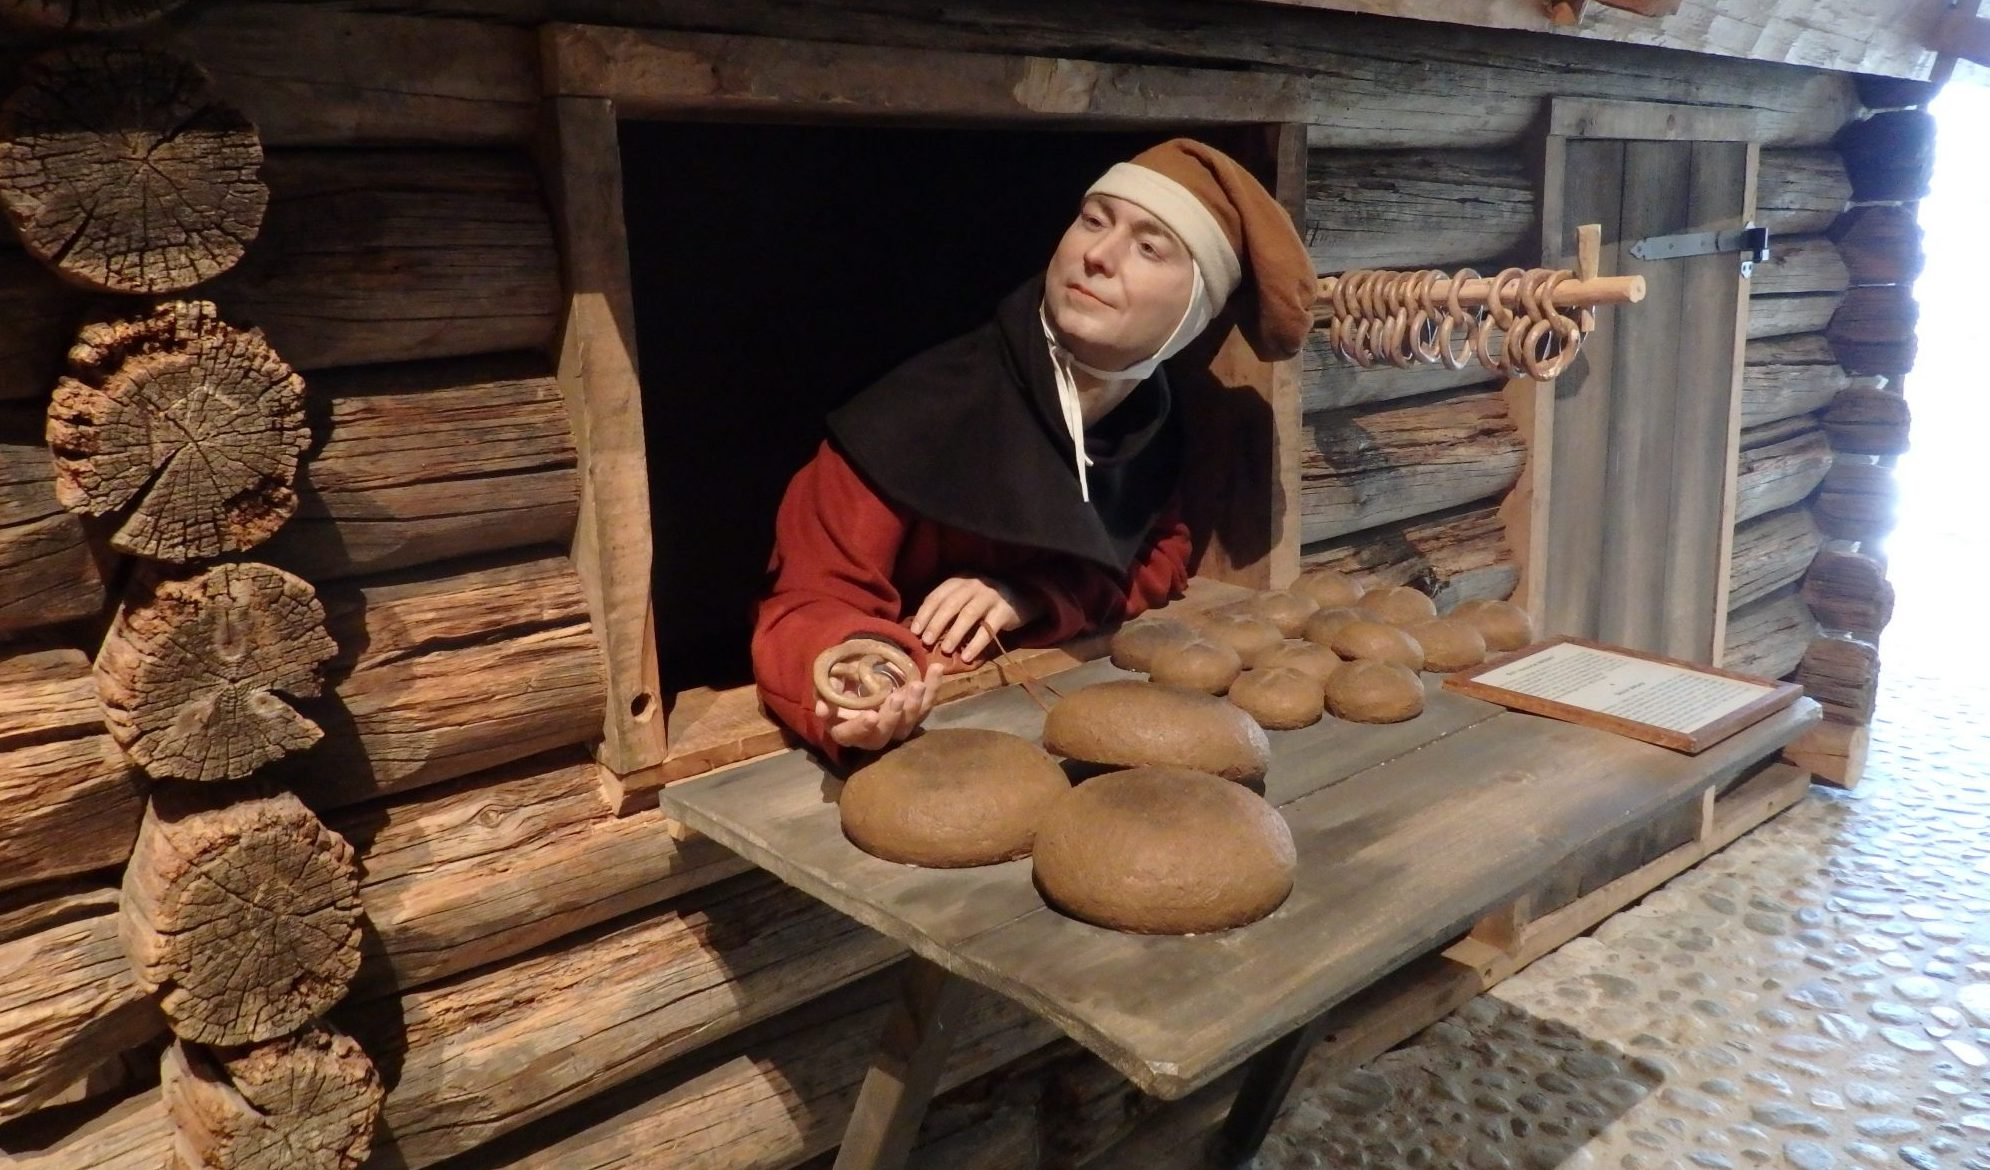 Mannequins illustrate everyday city life in the Medieval Museum.